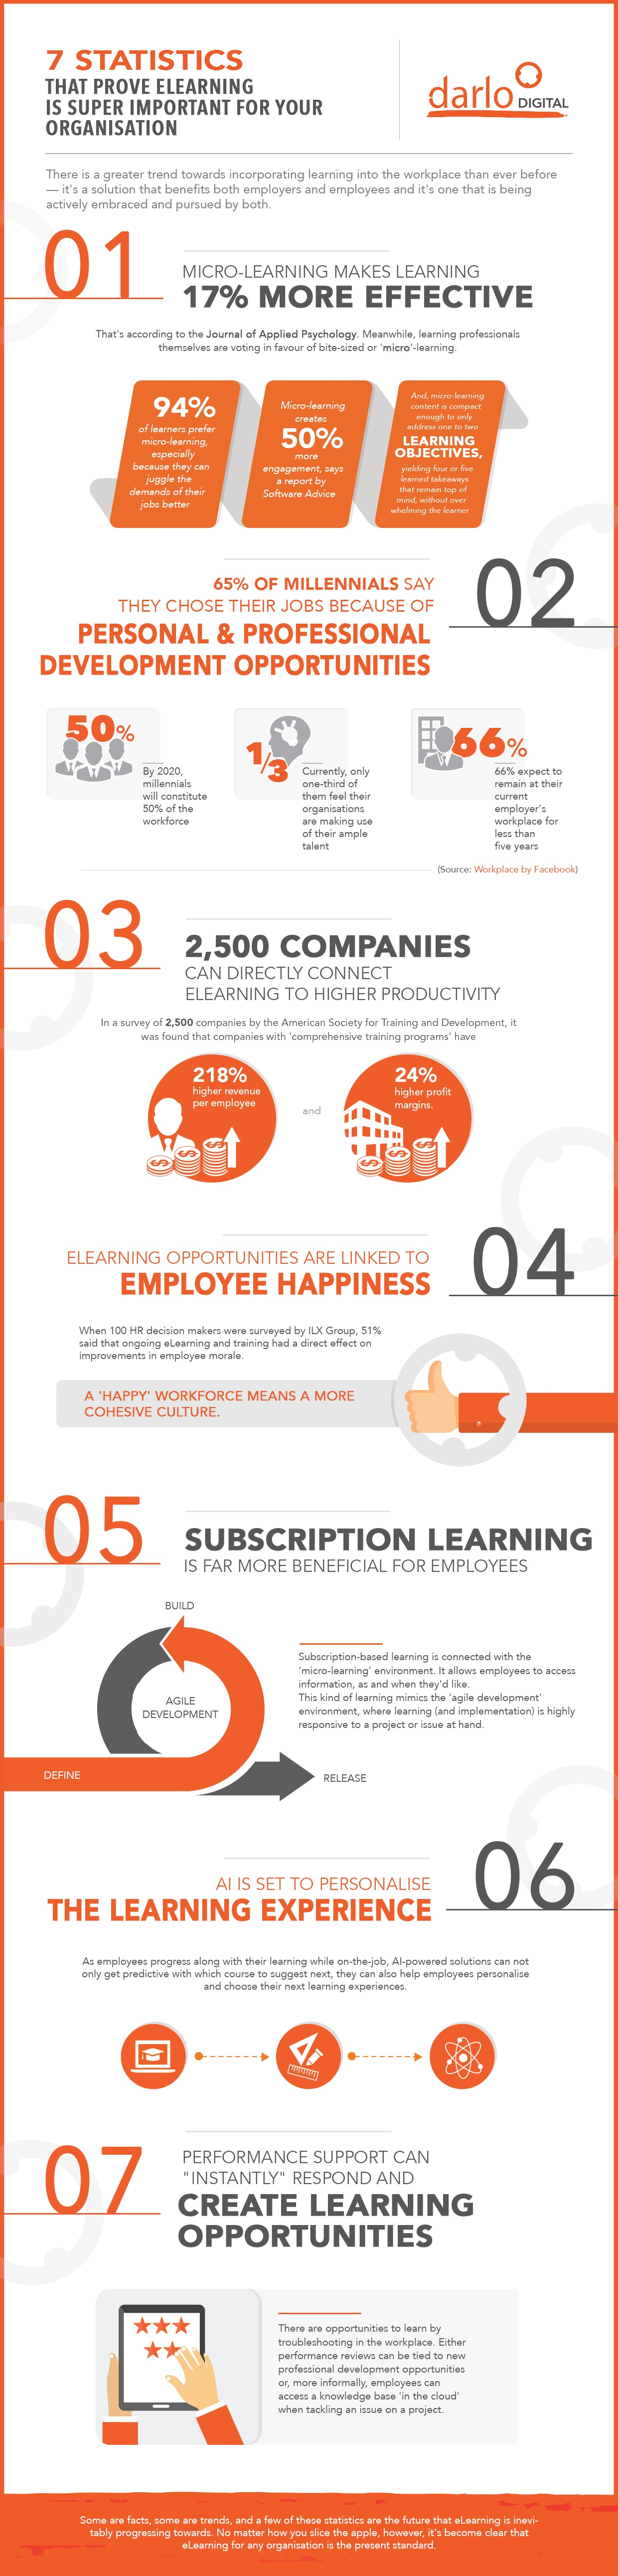 7 Statistics That Prove eLearning Is Super Important For Your Organisation